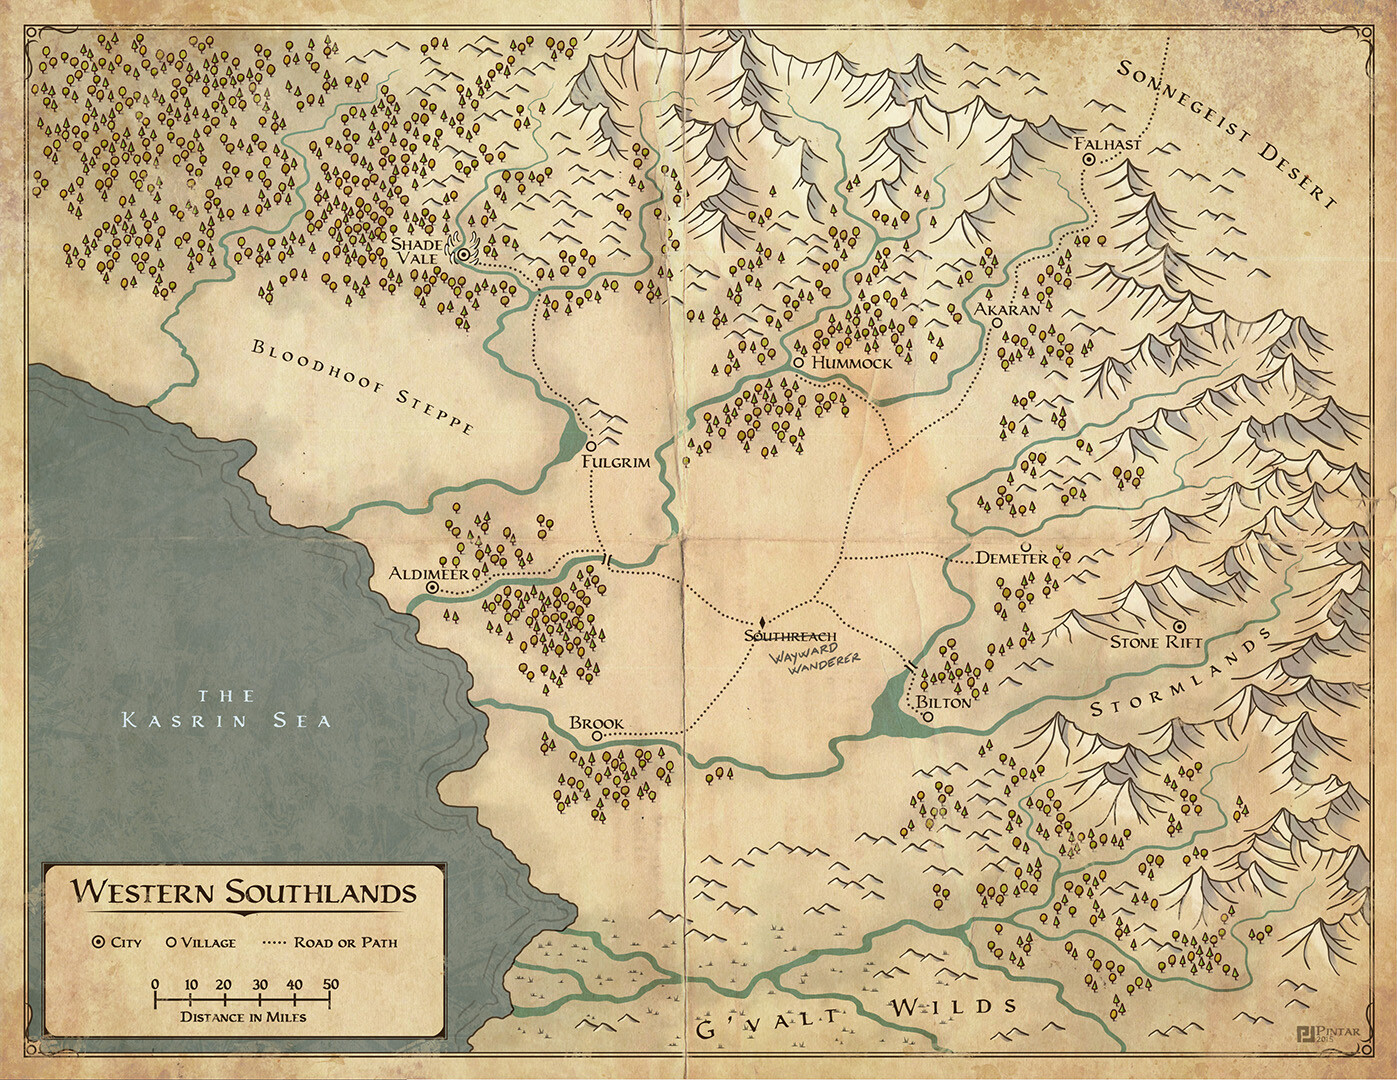 Provokers map